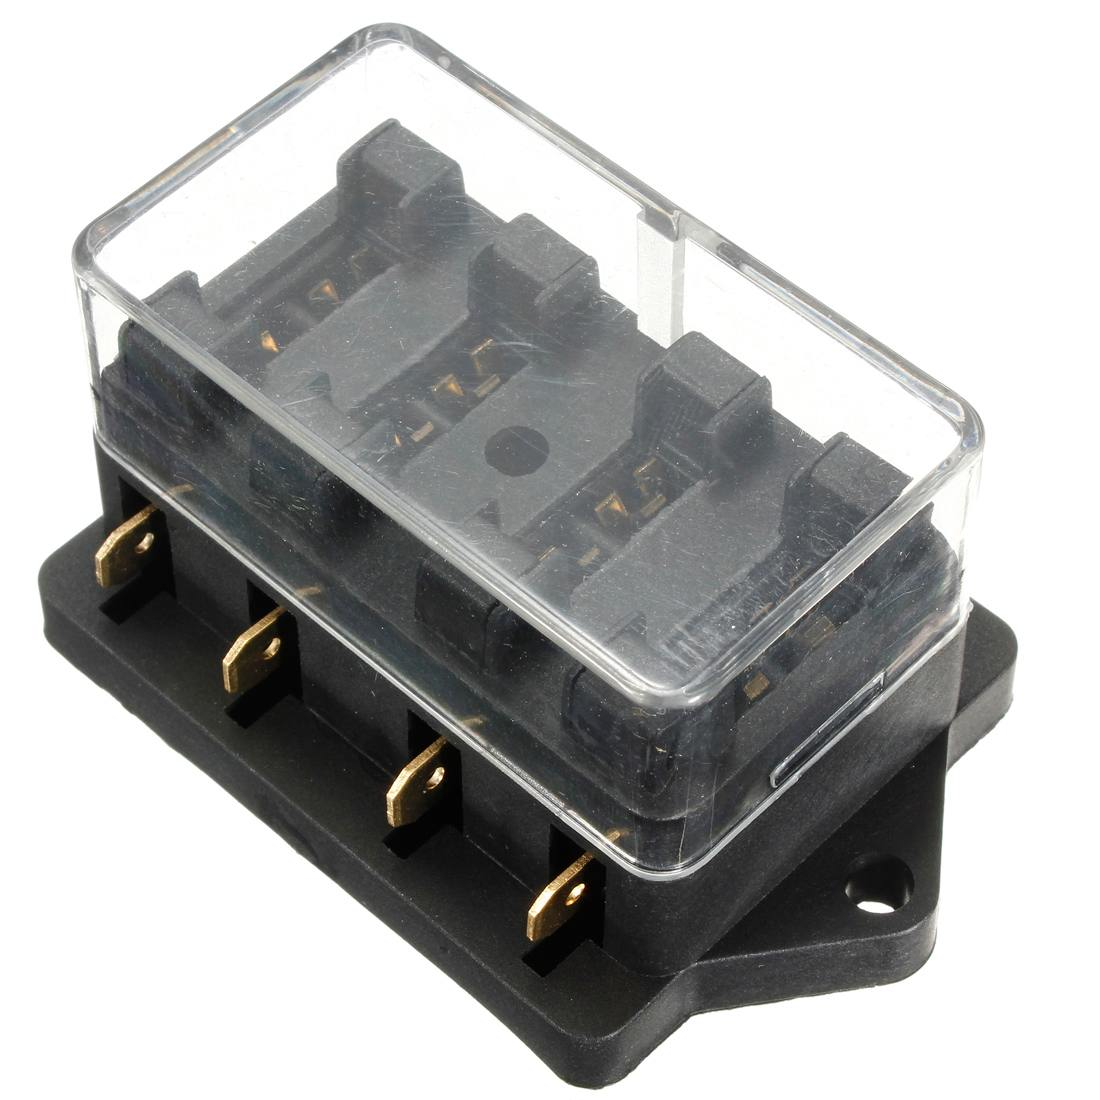 sicherungen & sicherungsboxen car motorcycle quad bike fits 99% cars 4 way  universal standard 12v fuse box